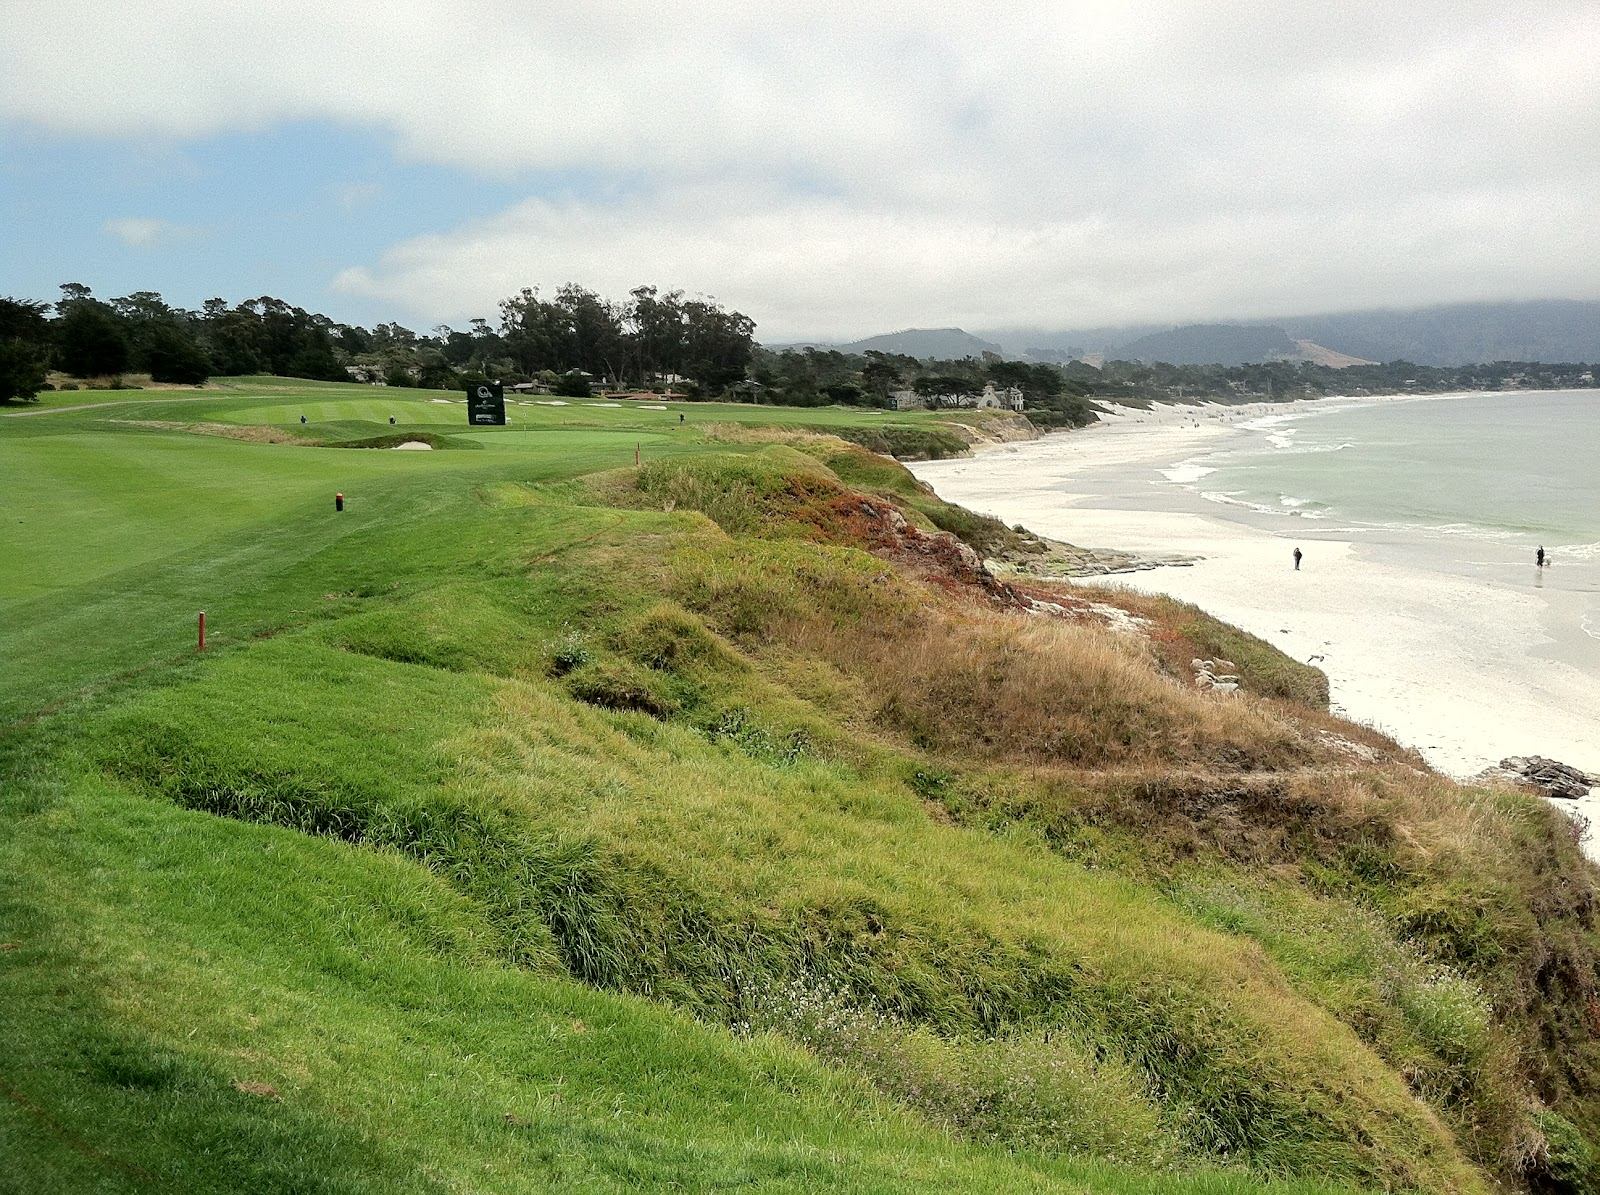 Amc Grand Island 7 >> Pebble Beach Golf Links - Pic of the Week ~ The World of Deej